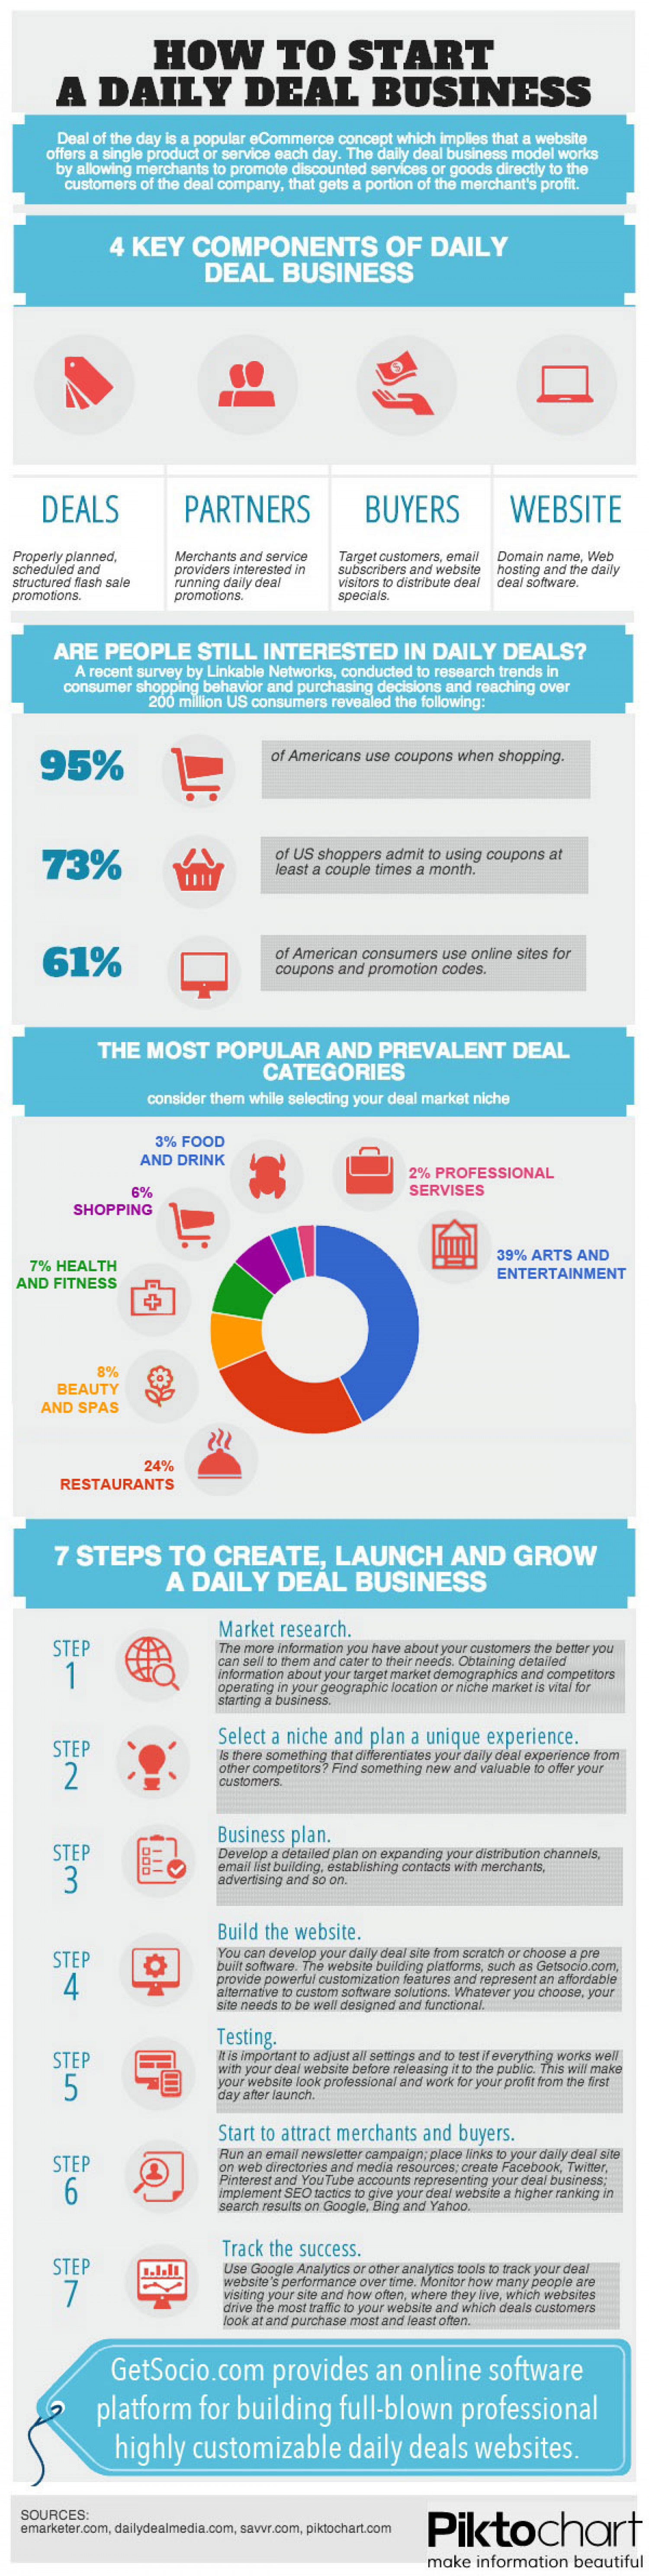 How to Start a Daily Deal Dusiness Infographic